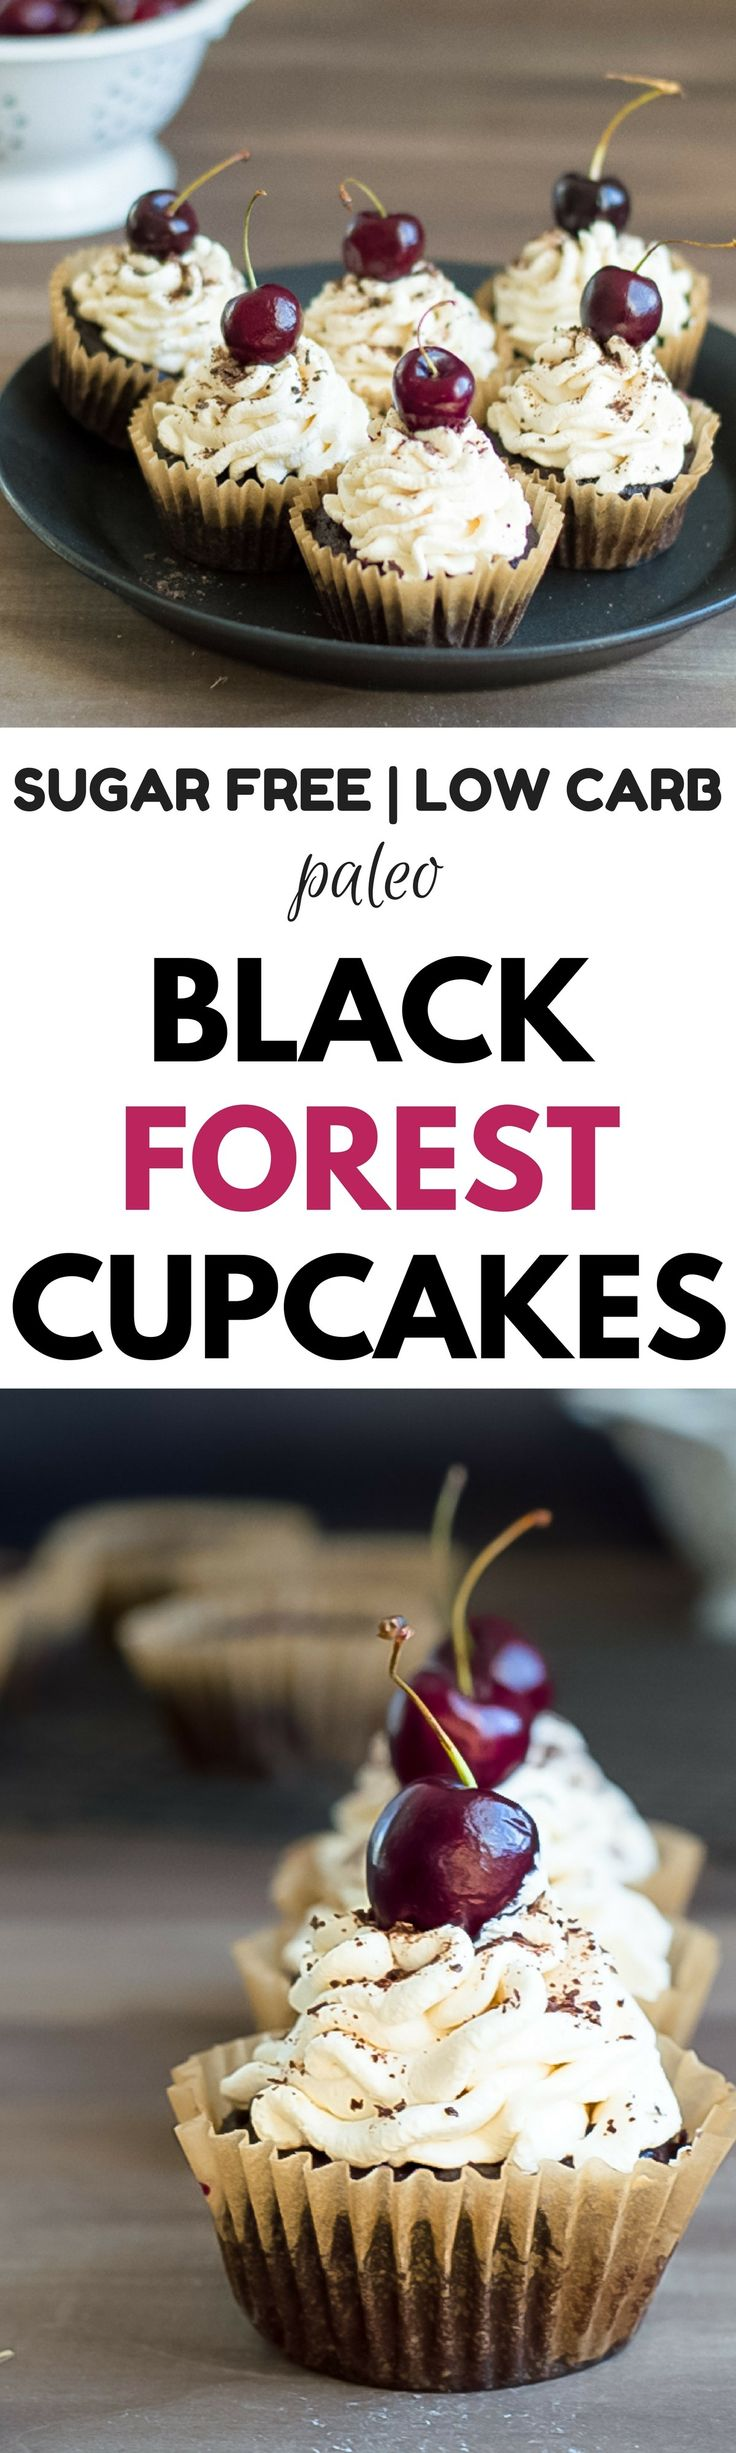 Black Forest Cupcakes that are homemade and stuffed with a cherry filling. Healthy, easy, gluten free, dairy free black forest cupcakes.